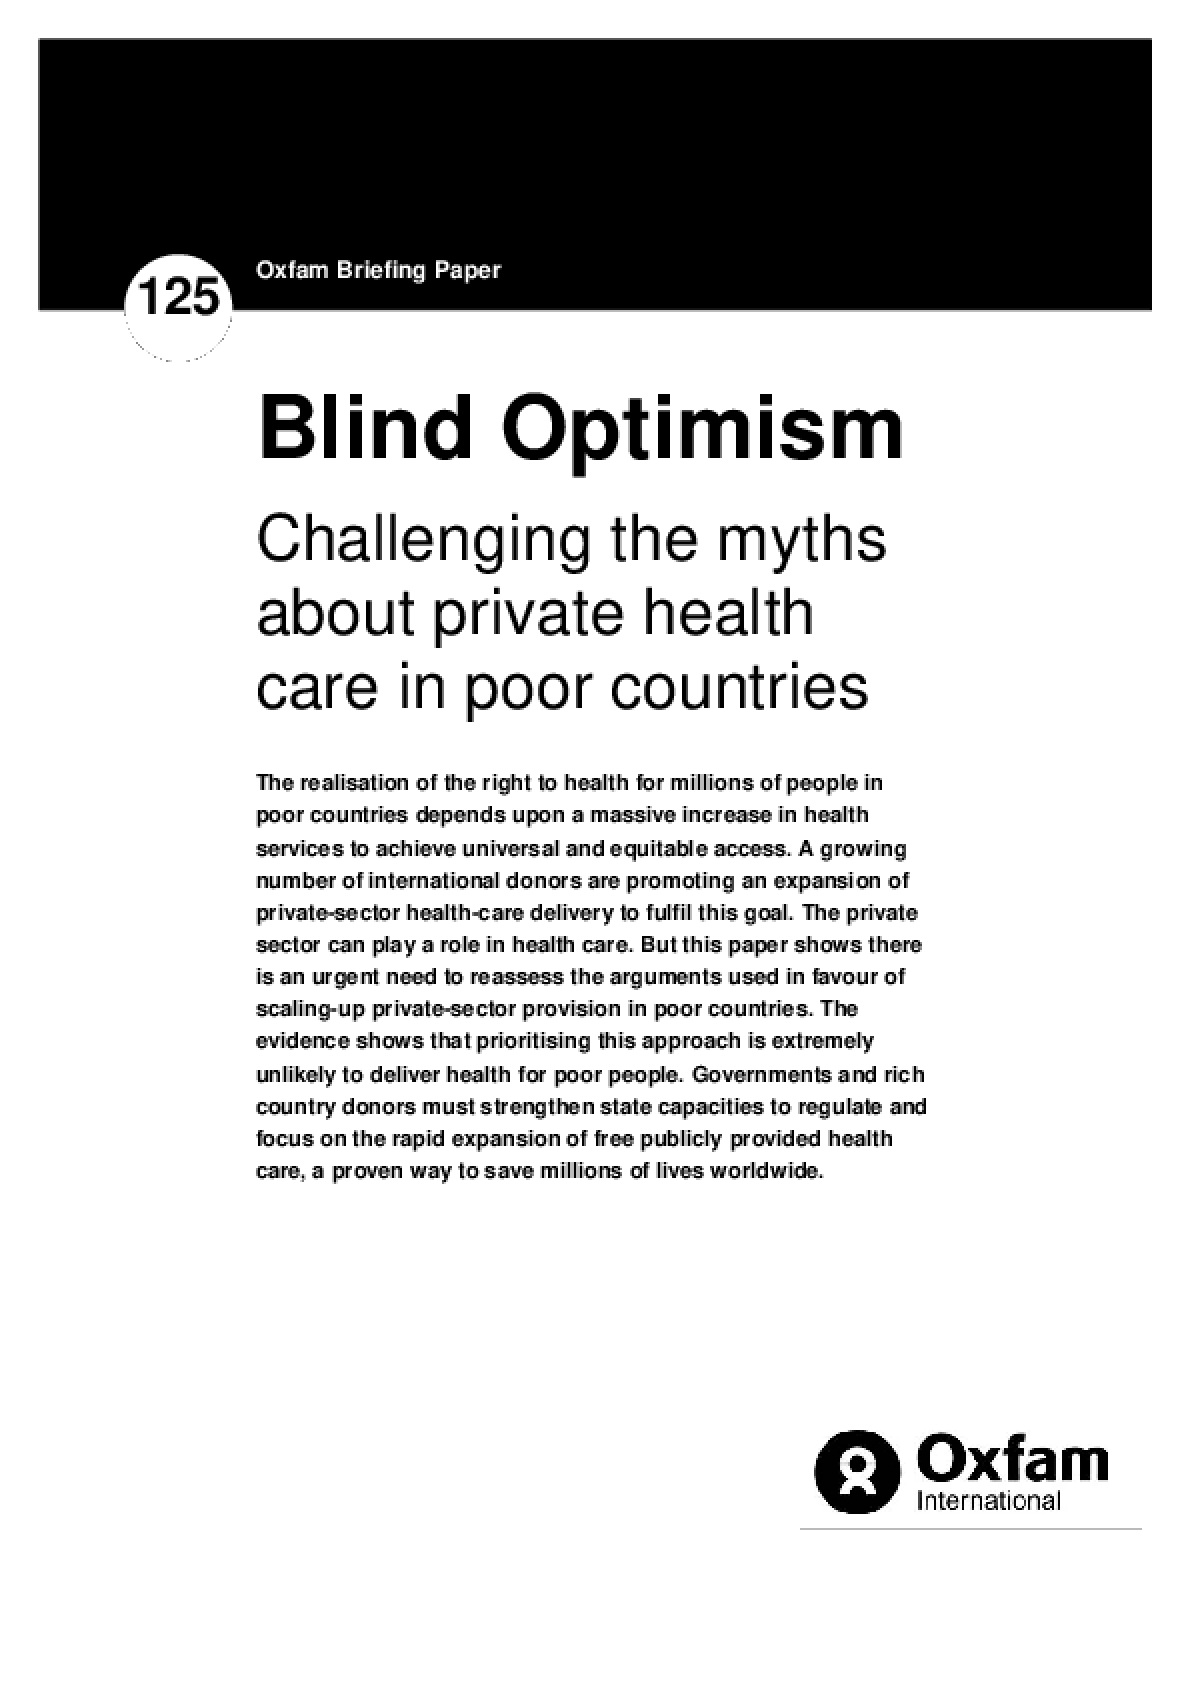 Blind Optimism: Challenging the myths about private health care in poor countries